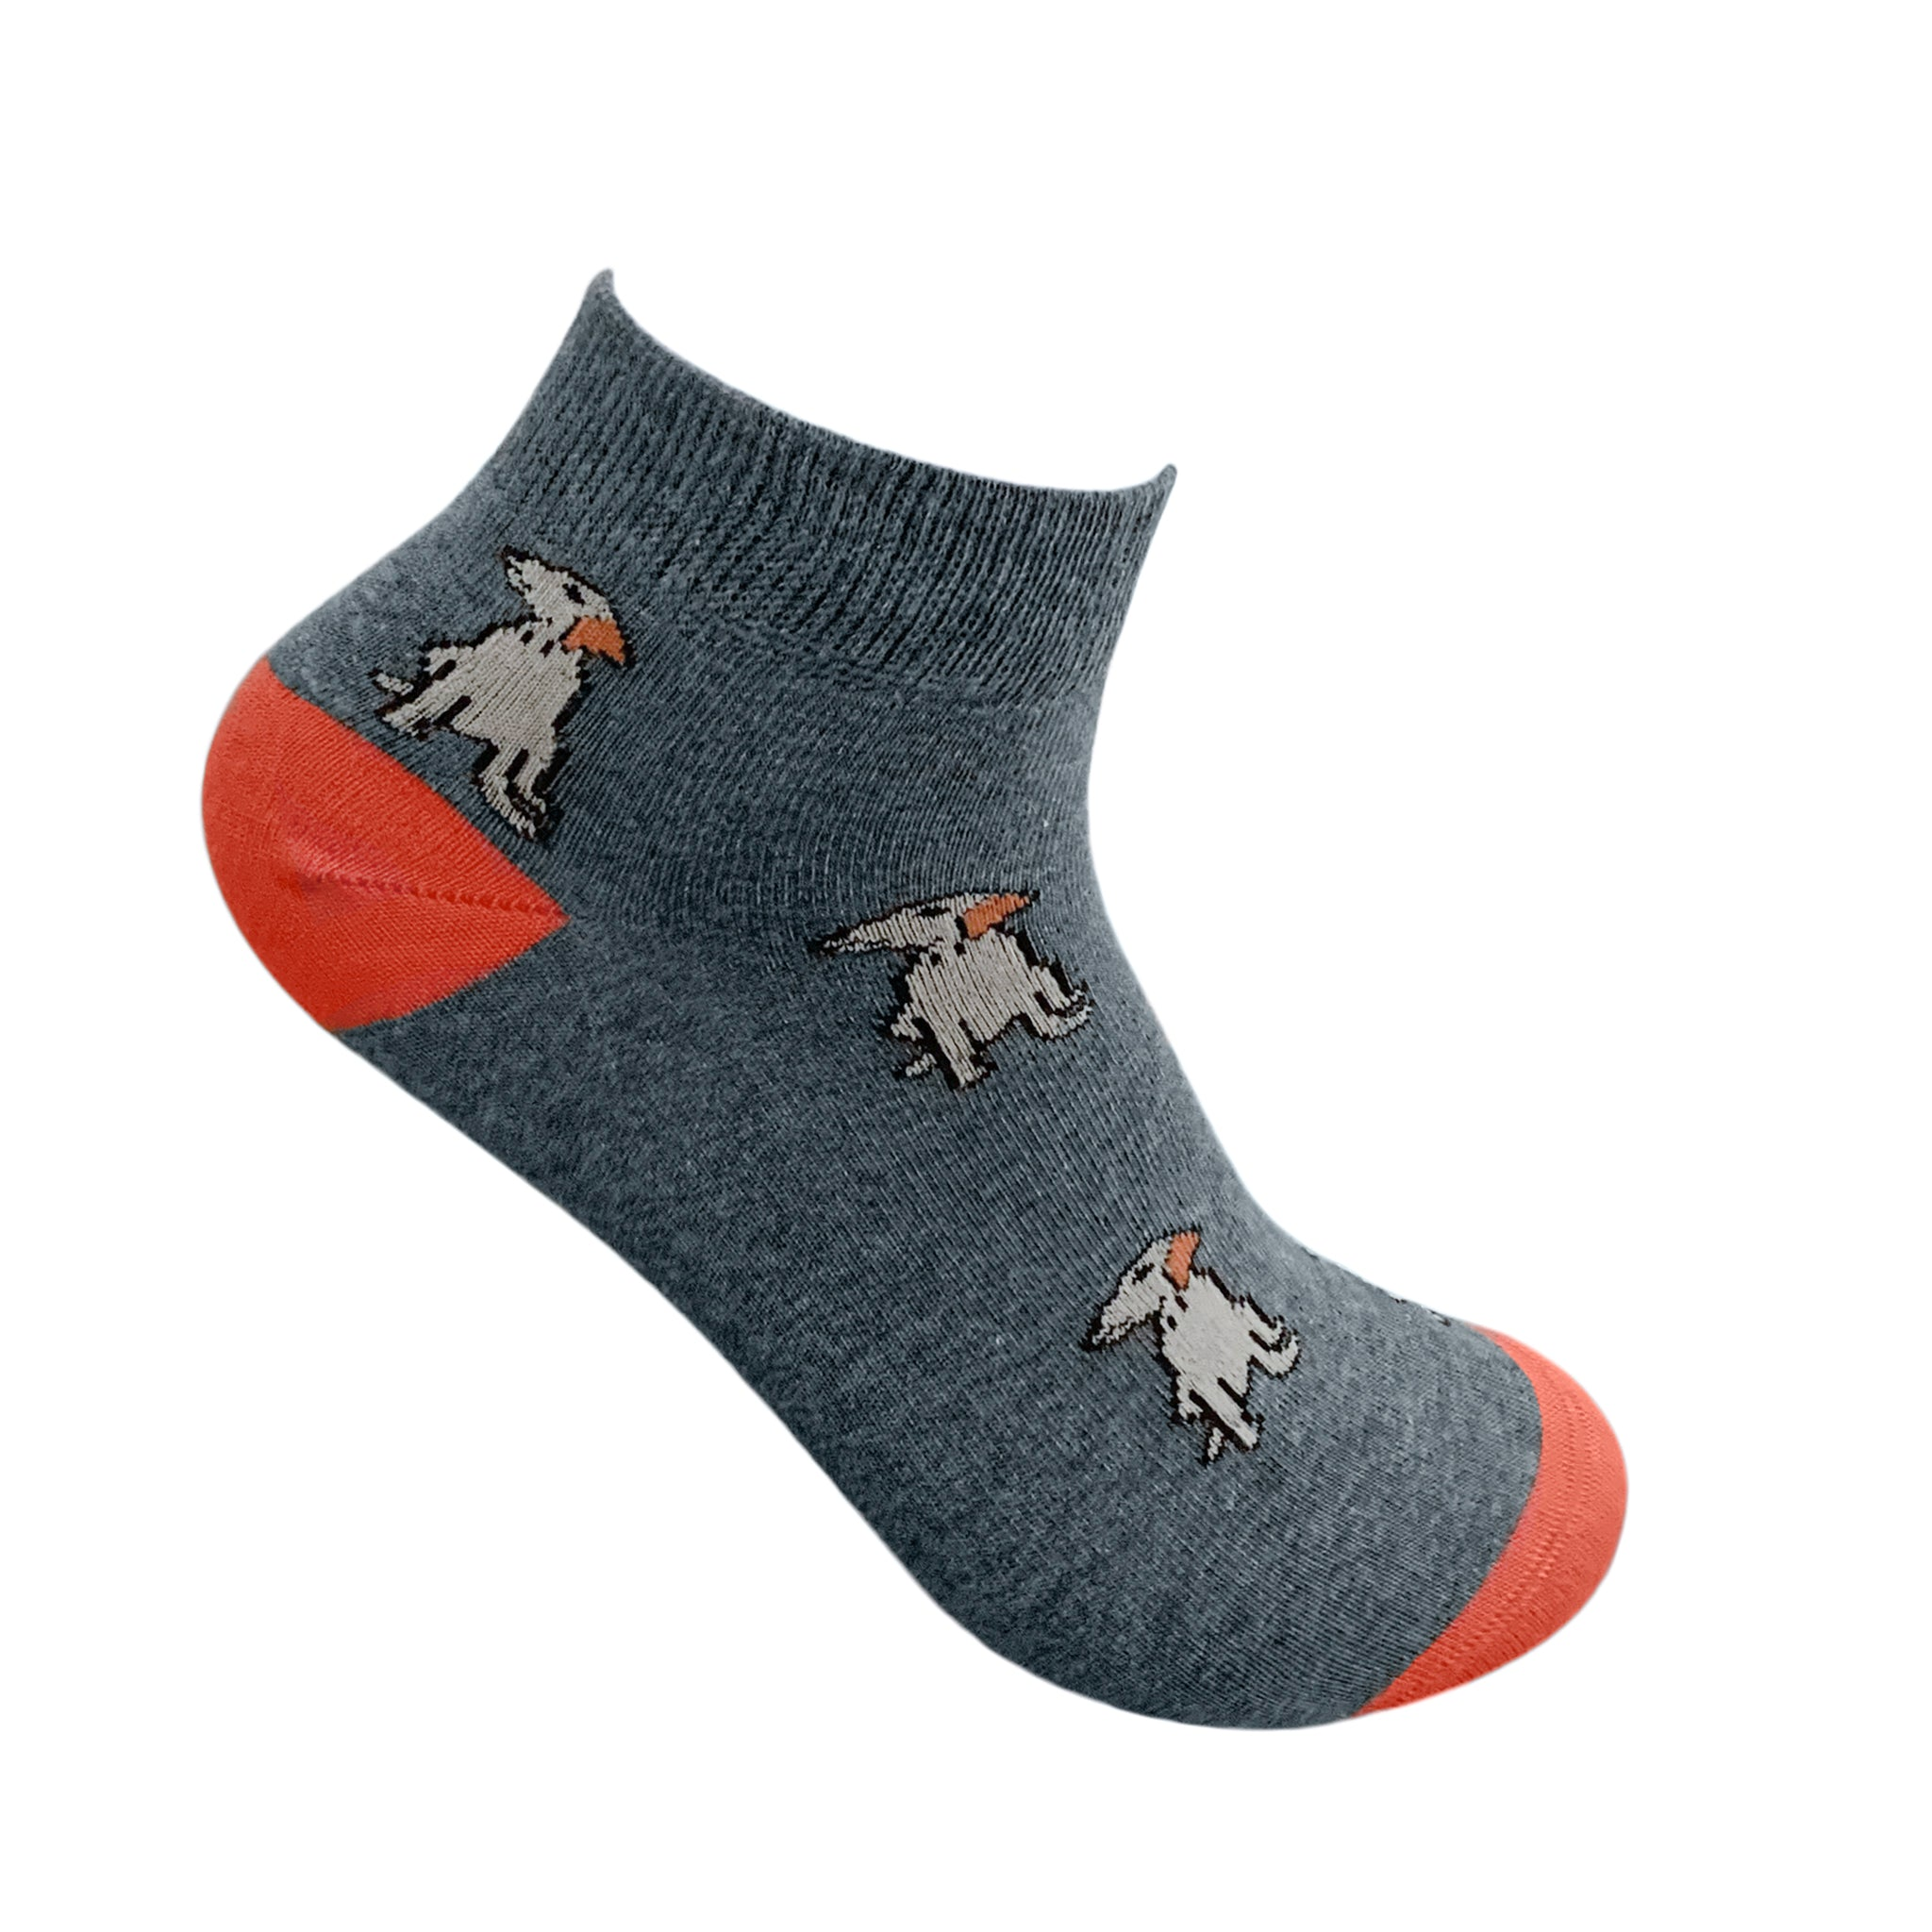 MAN'S BEST FRIEND ANKLE SOCKS